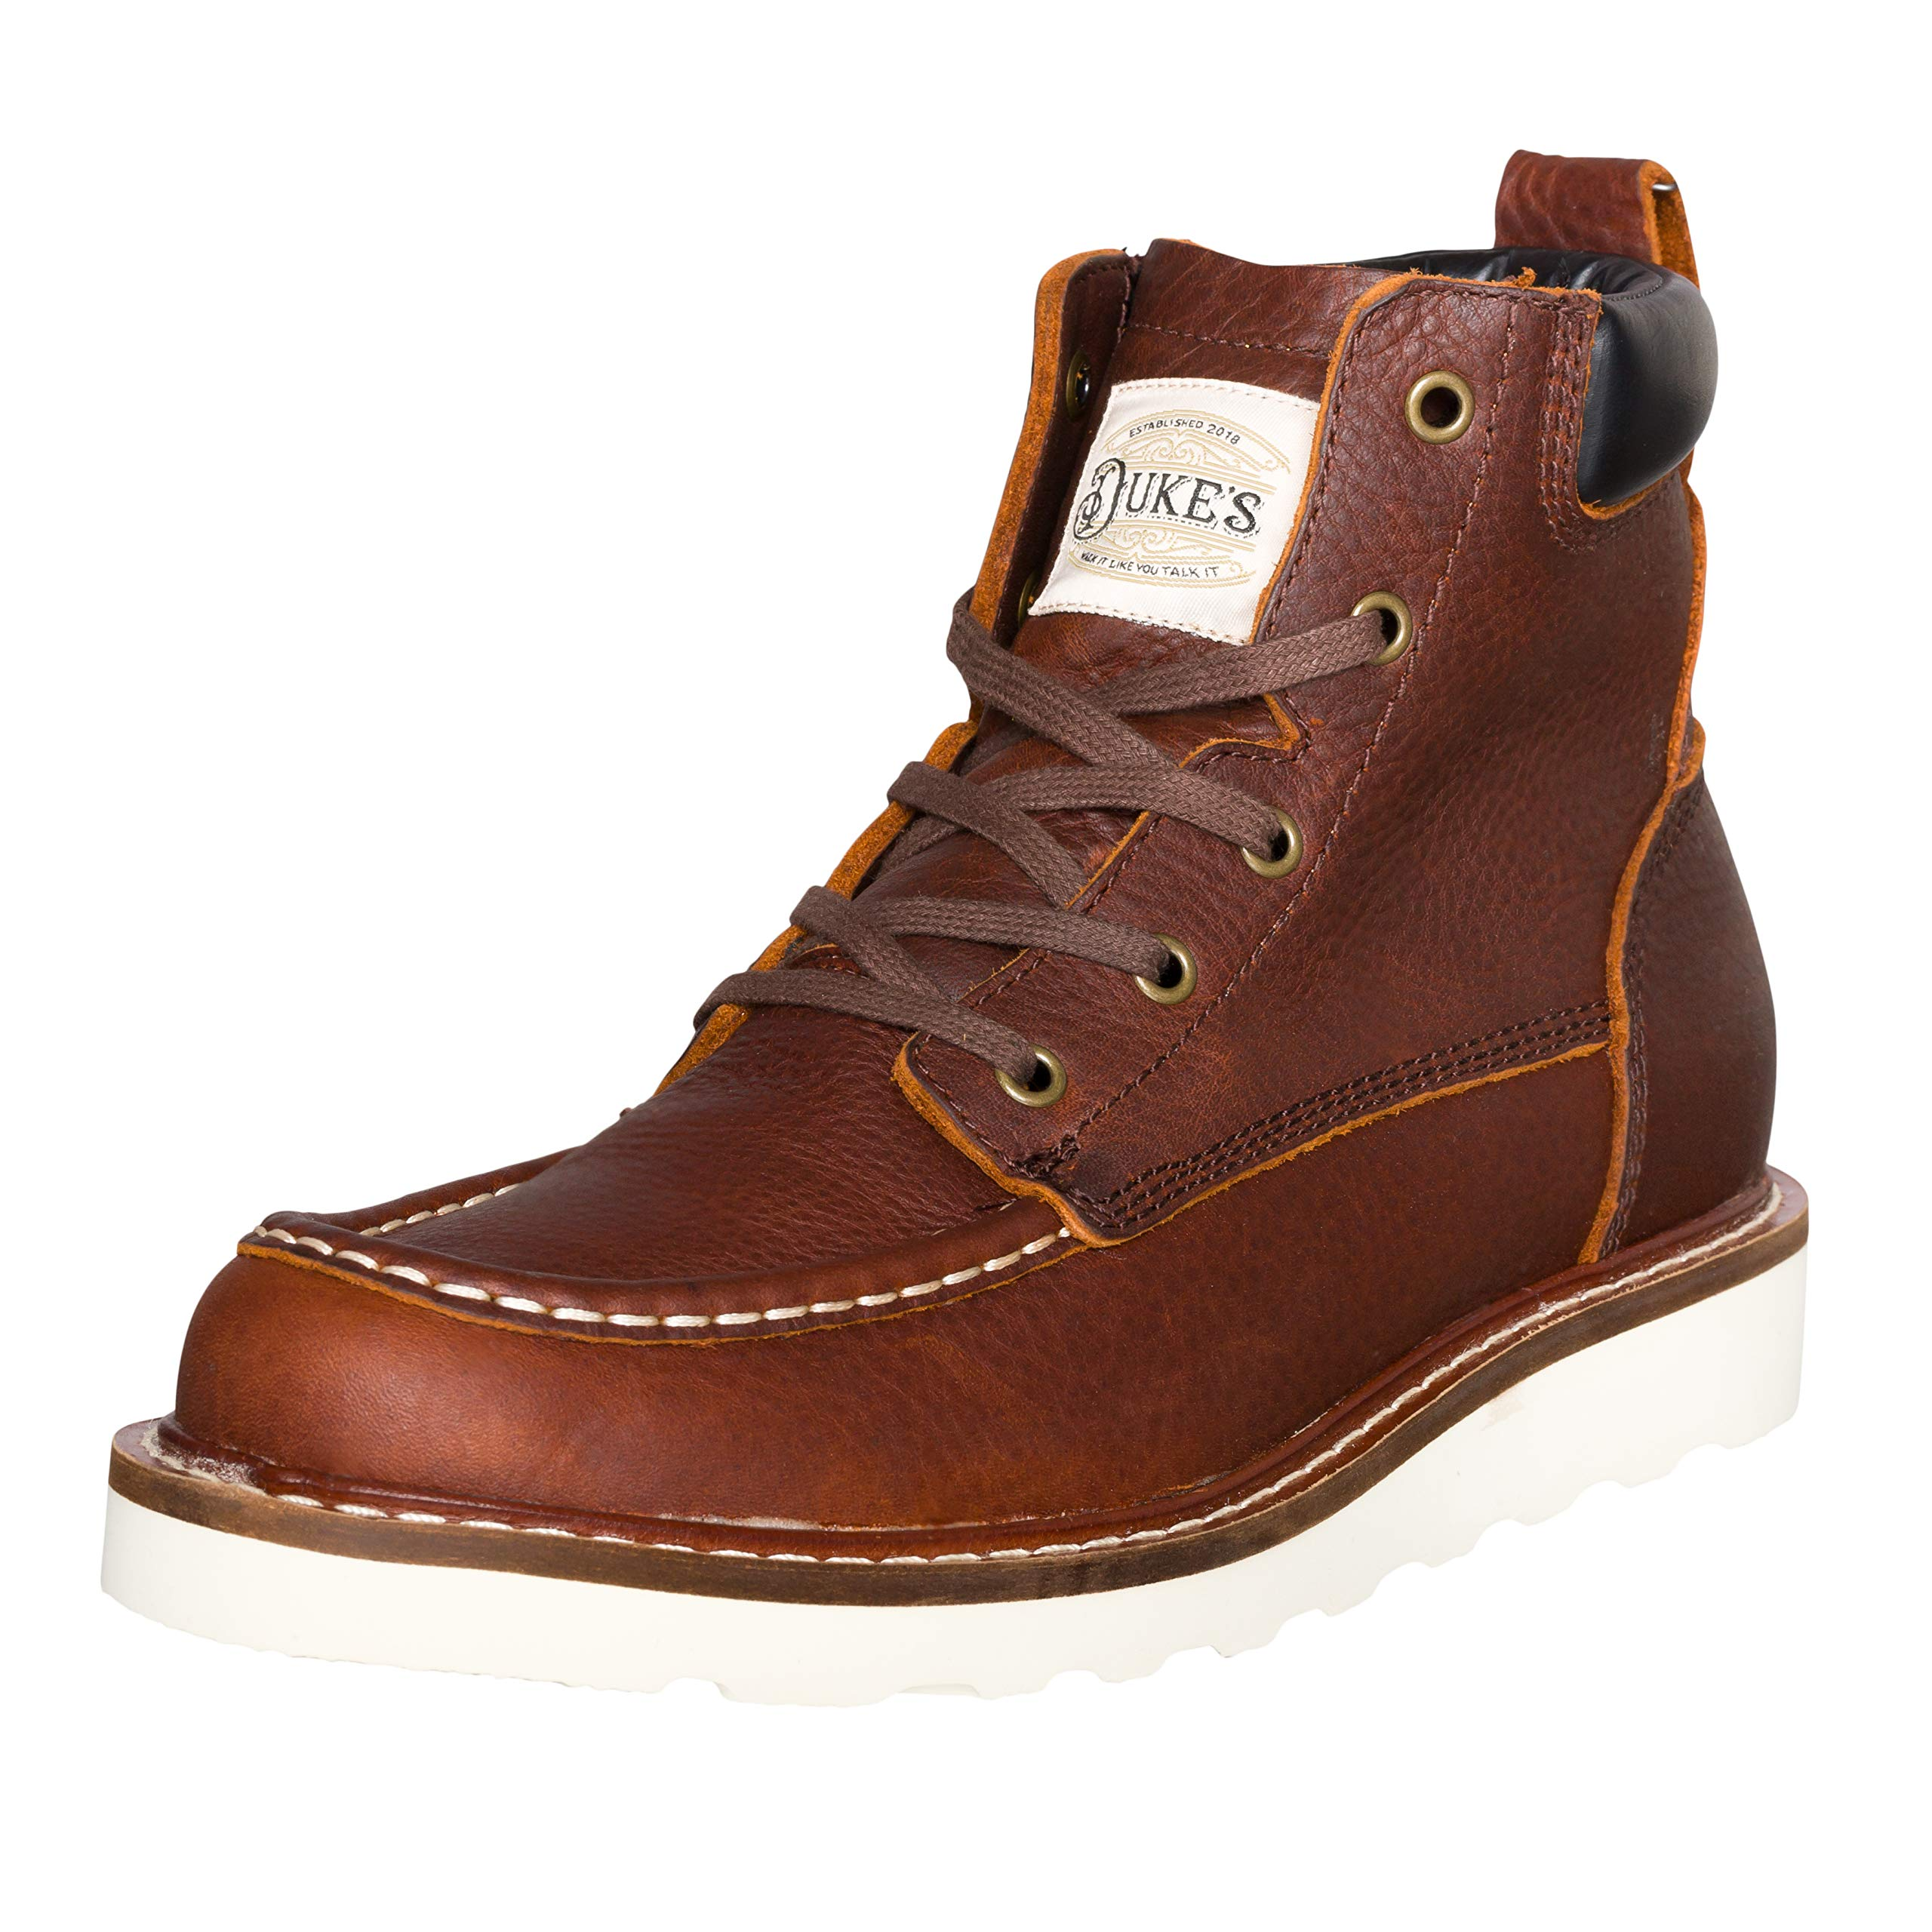 Duke's Mens Boots - Portland Leather Work Boot with Premium Cushion Insole (Cognac)